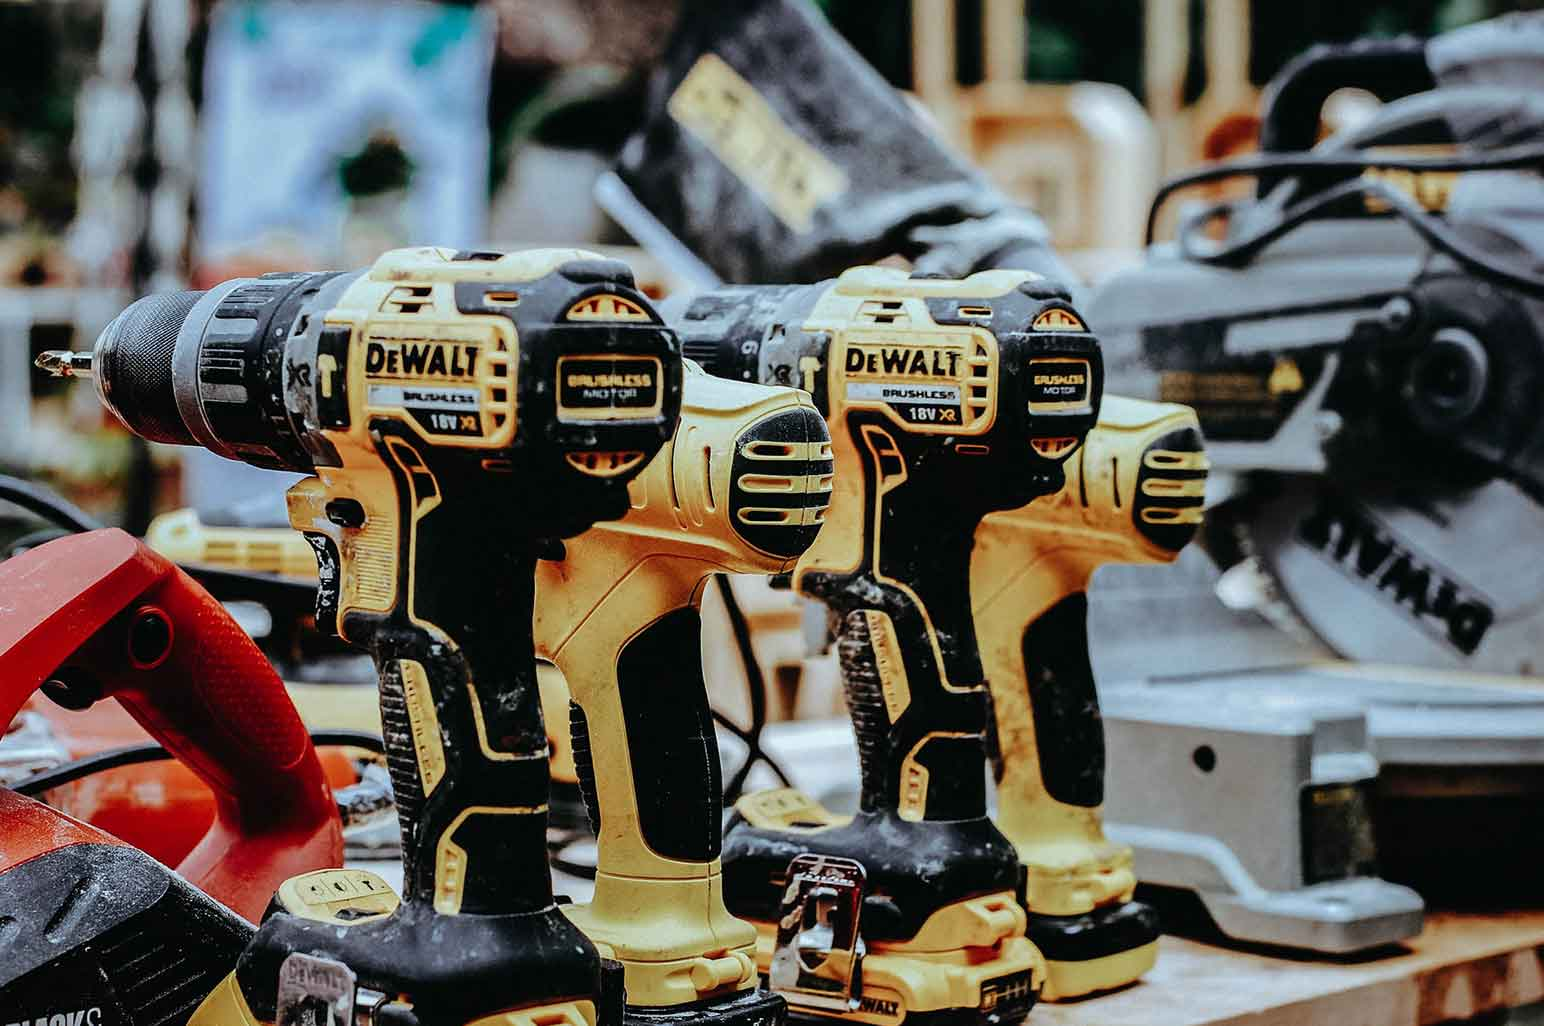 Qualities to Look For in a Power Drill